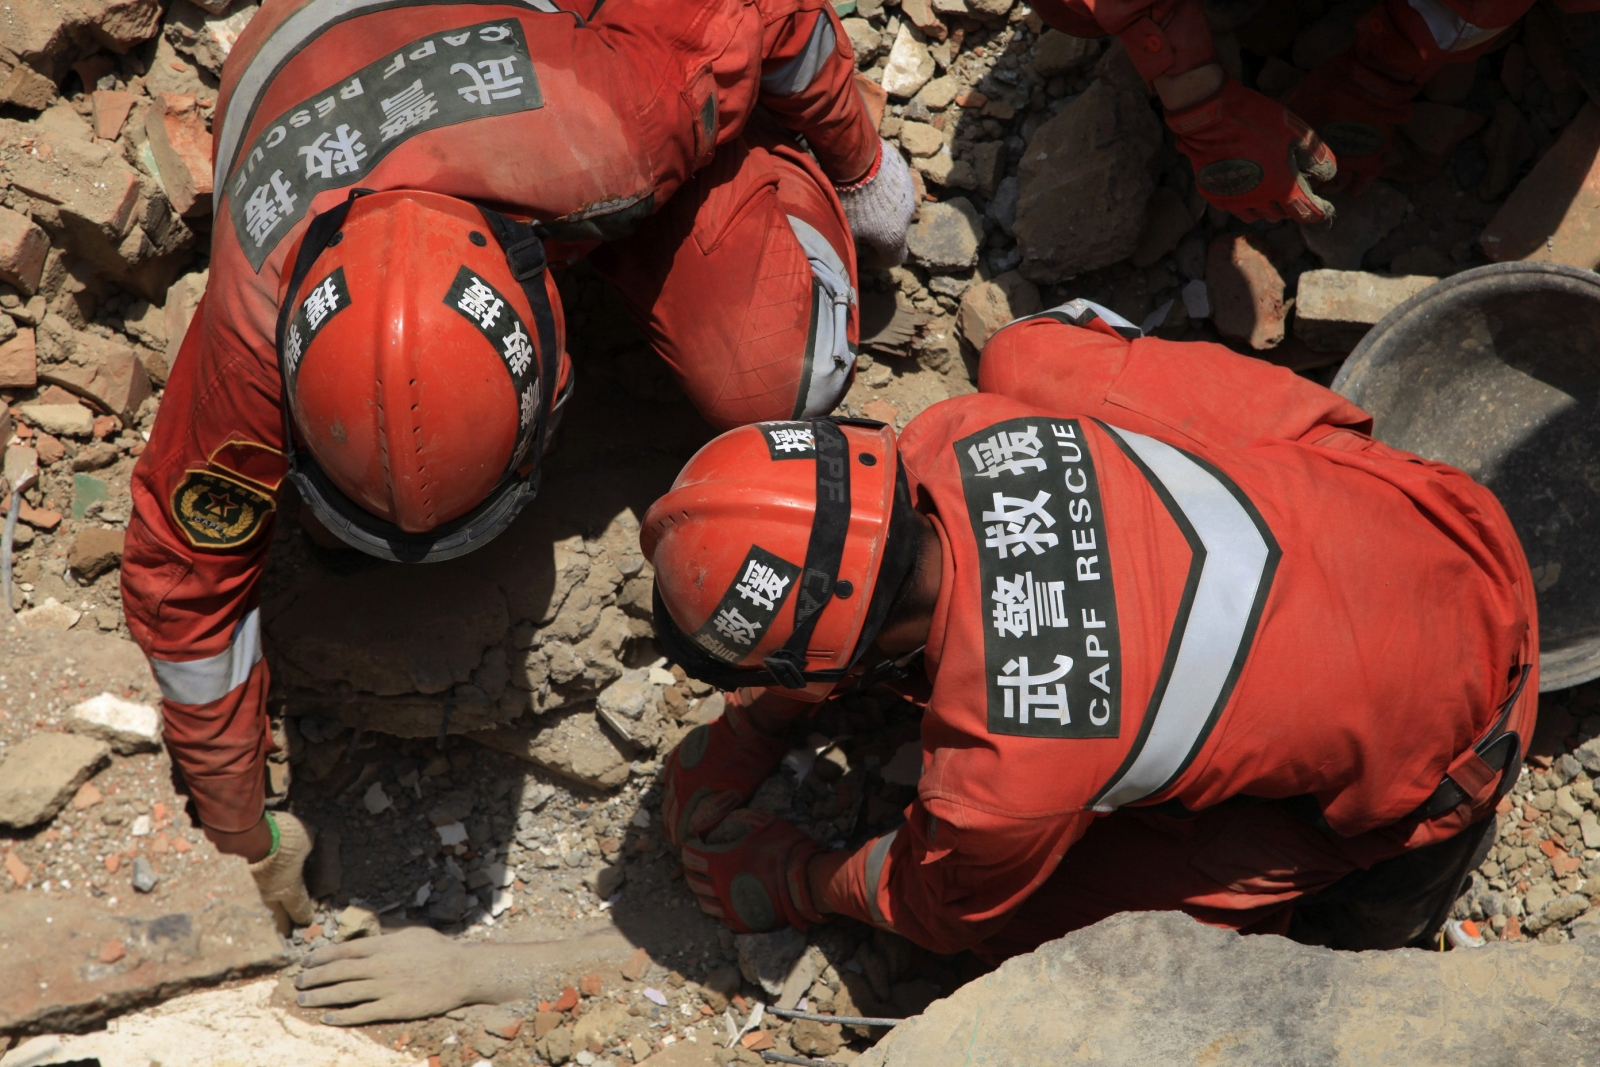 88 Year-Old Rescued after 50 hours in China Earthquake Rubble